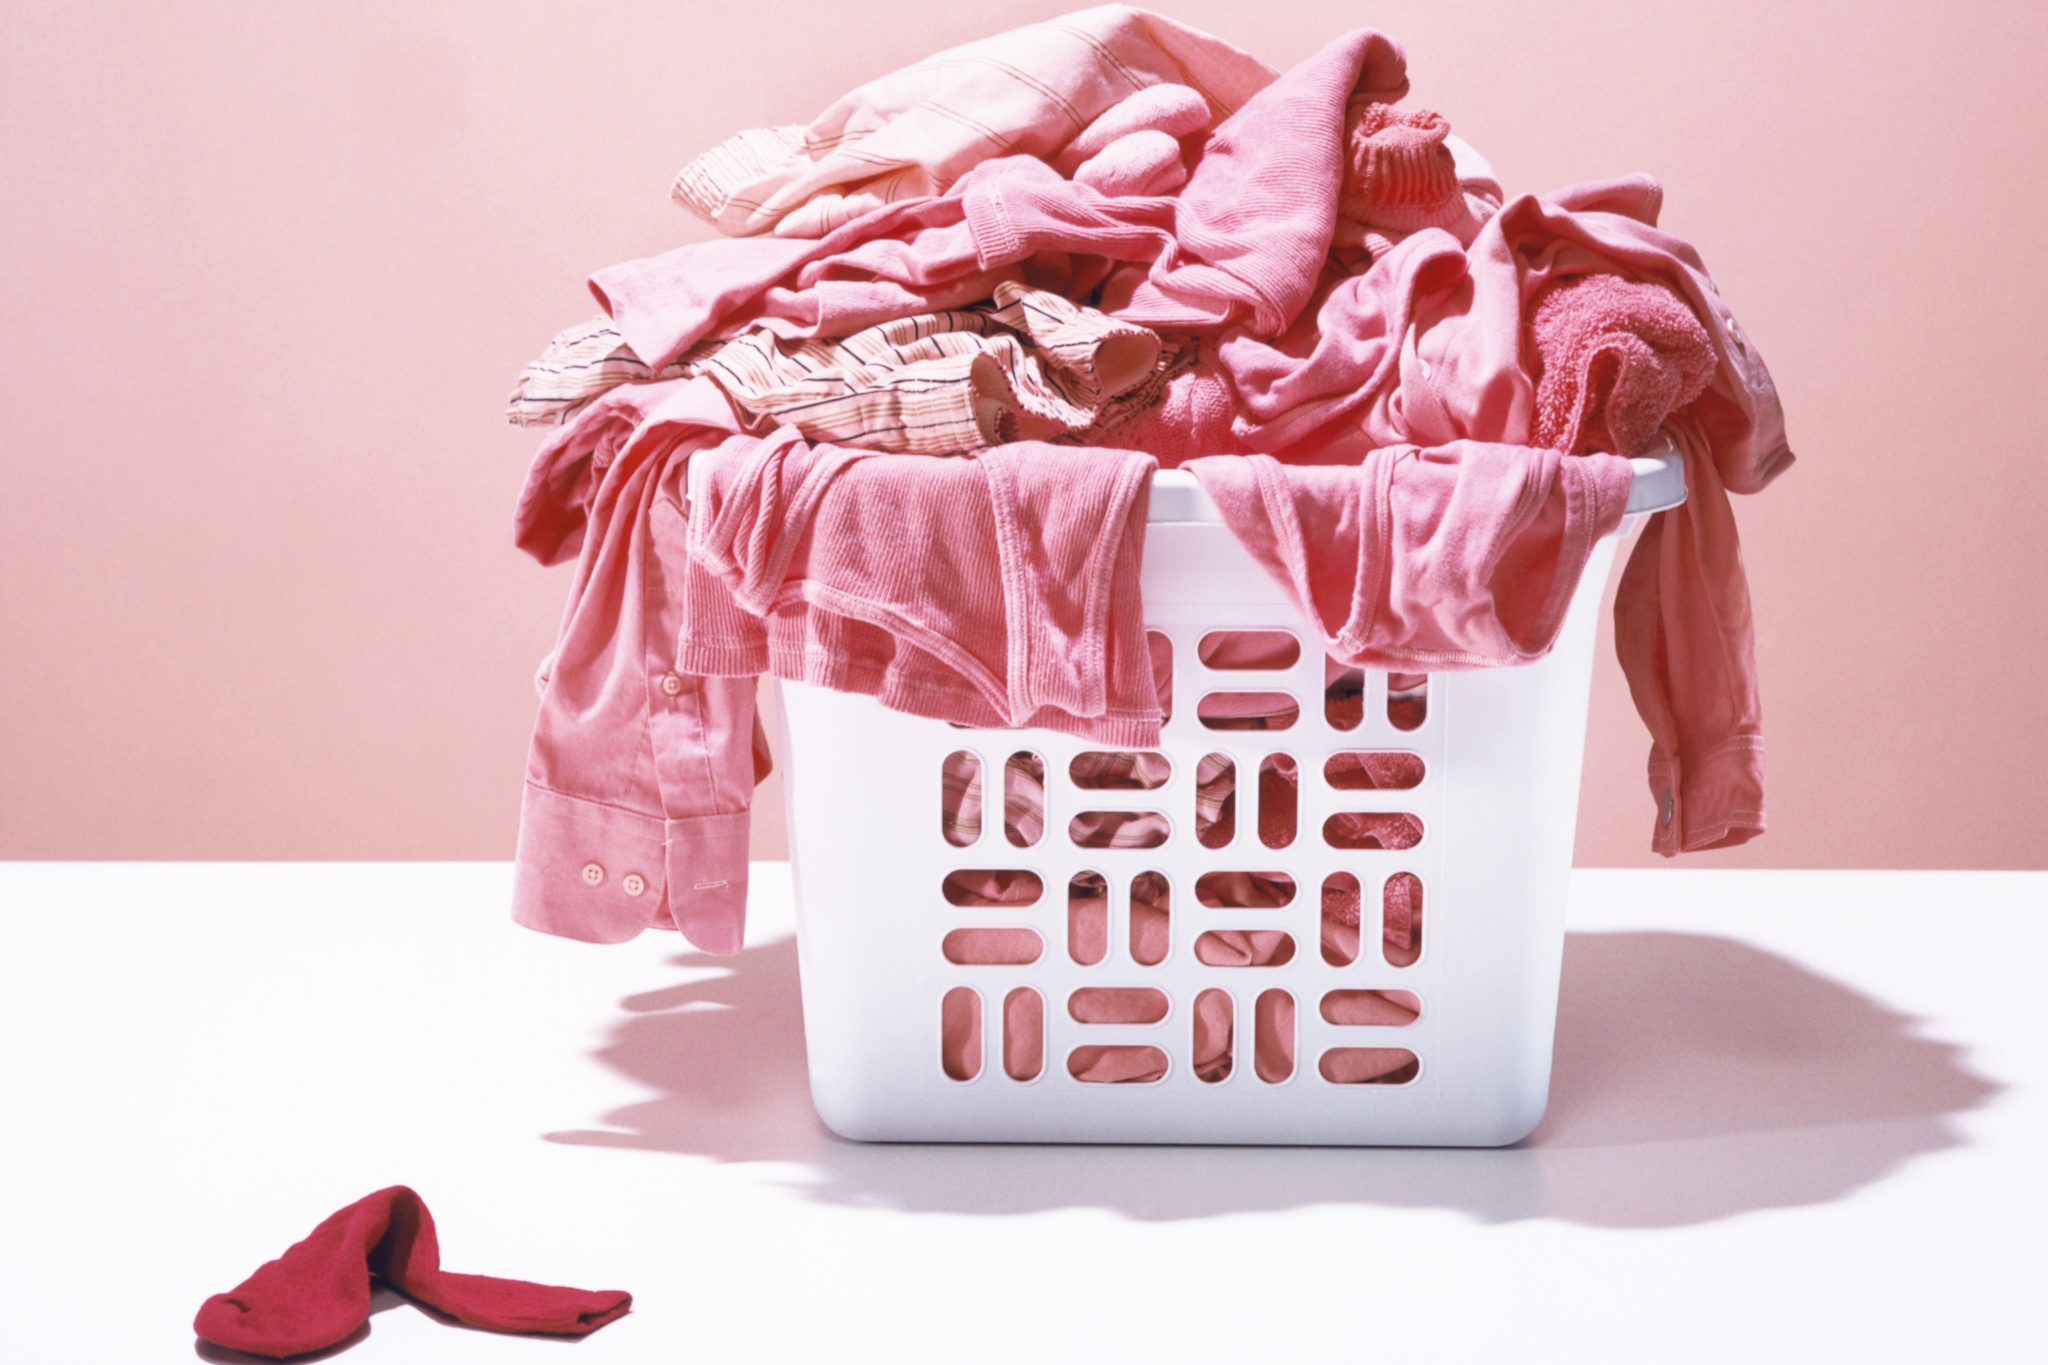 How to get red dye out of clothes